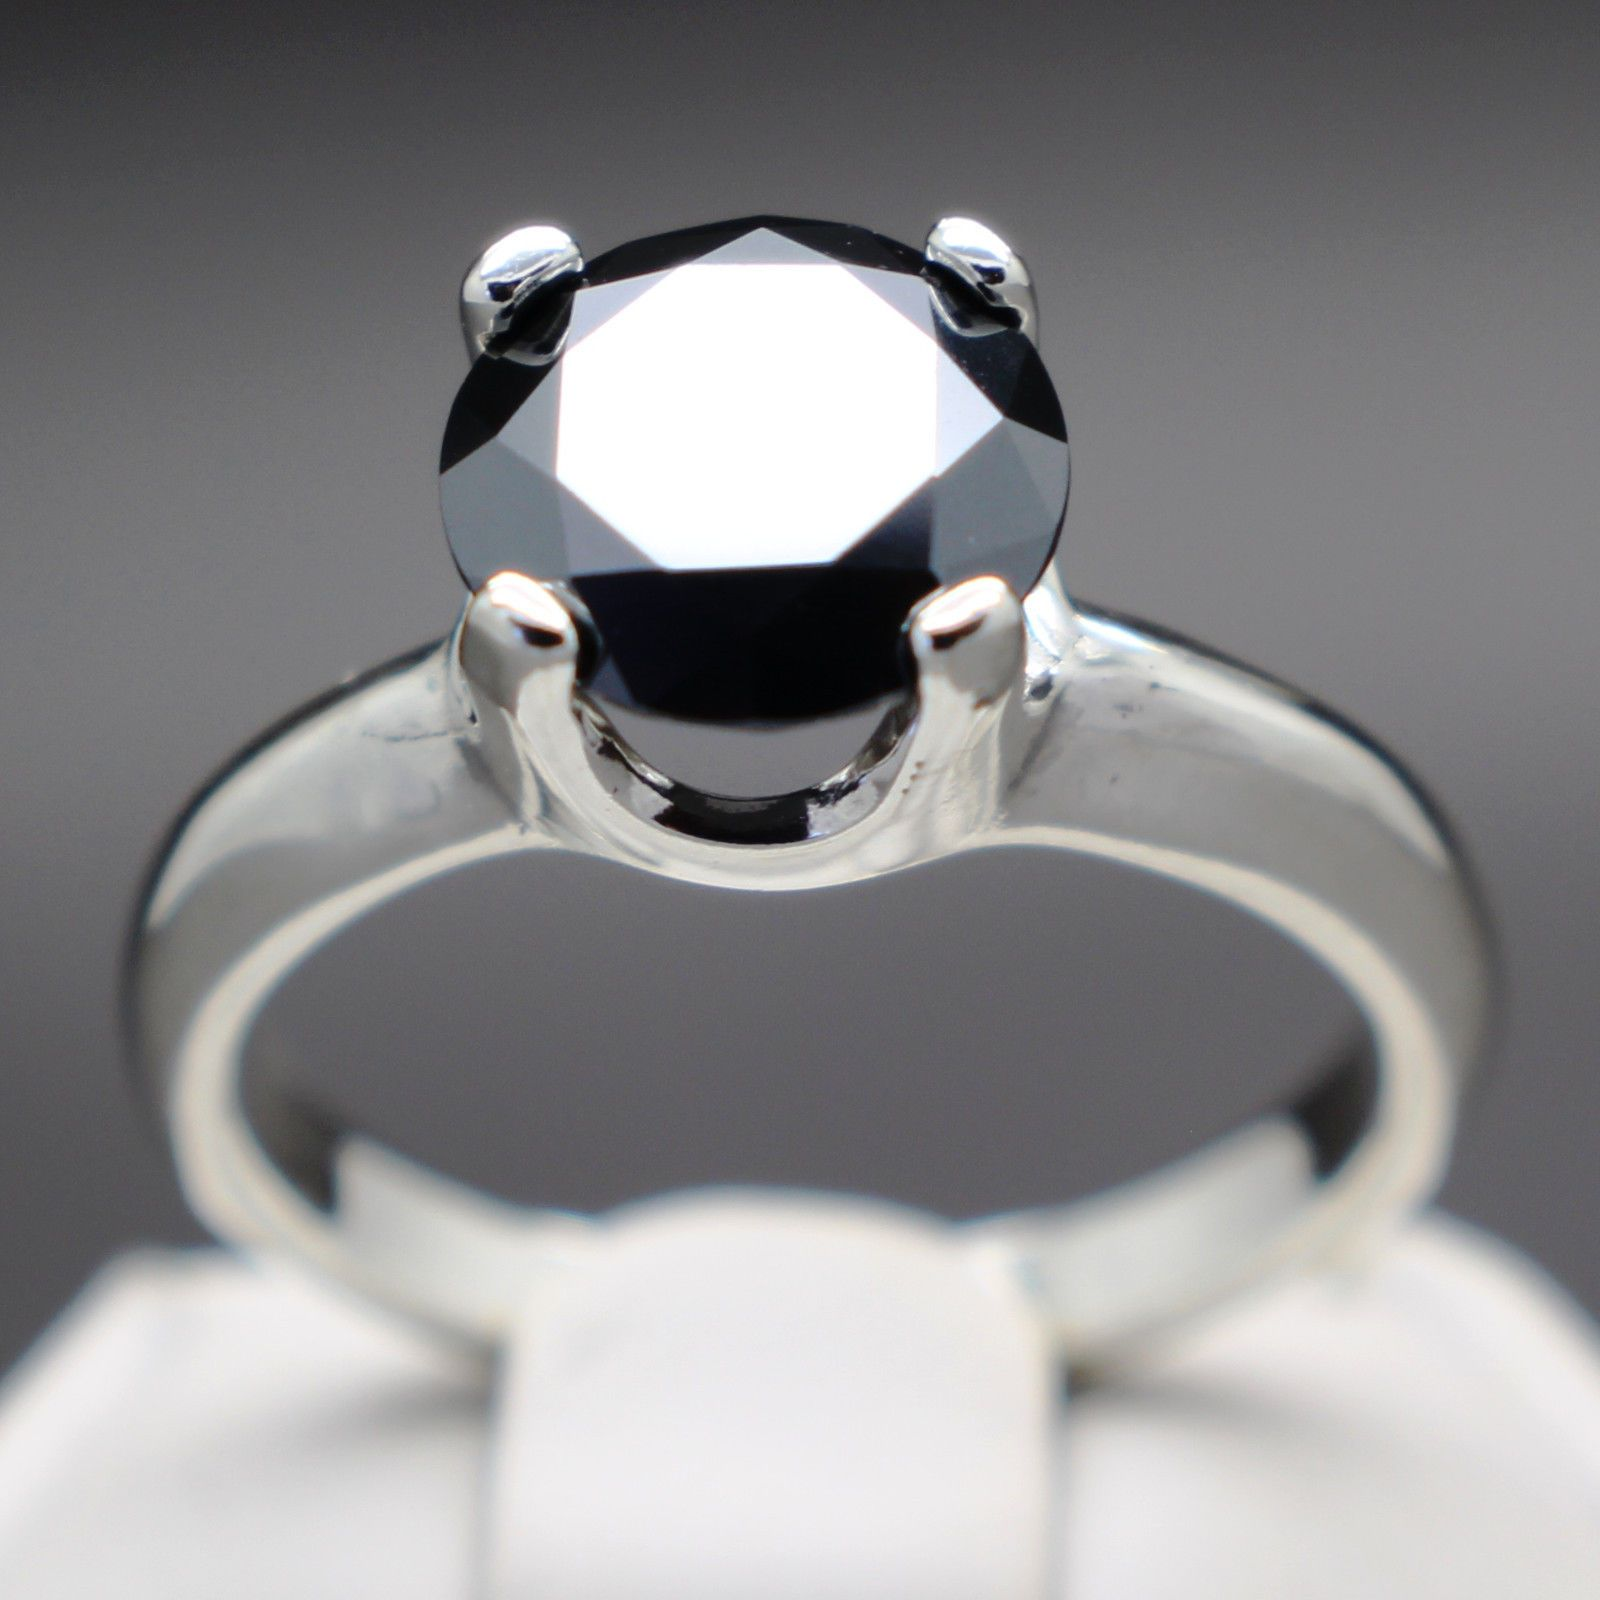 jewelry 3 11cts 9 84mm Natural Black Diamond Ring Certified AAA